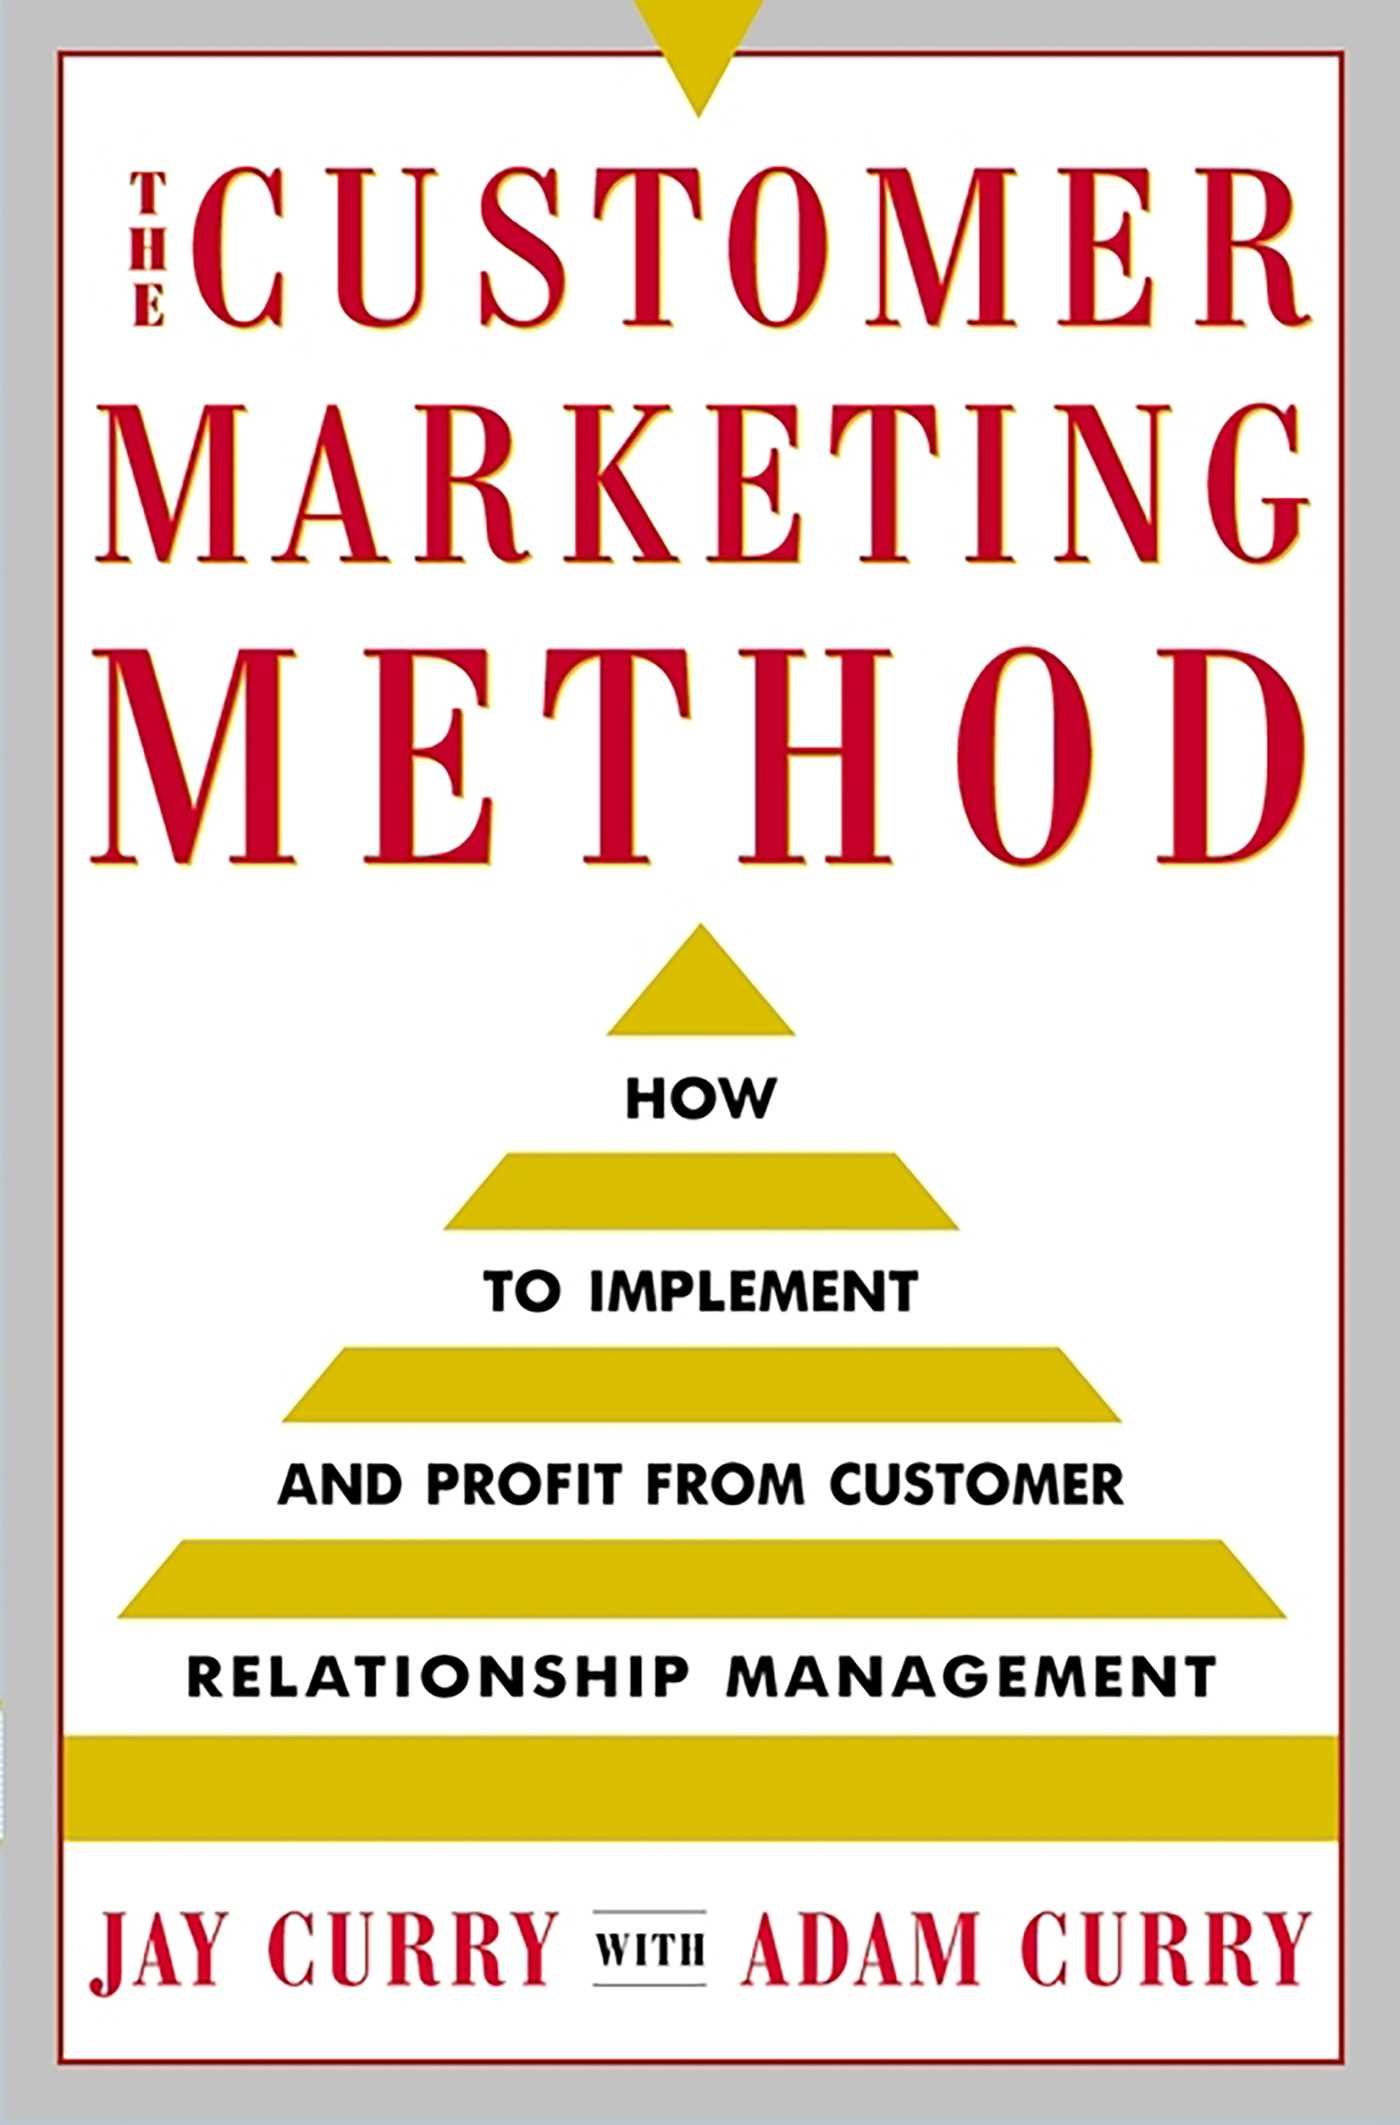 Download Ebook The Customer Marketing Method by Adam Curry Pdf